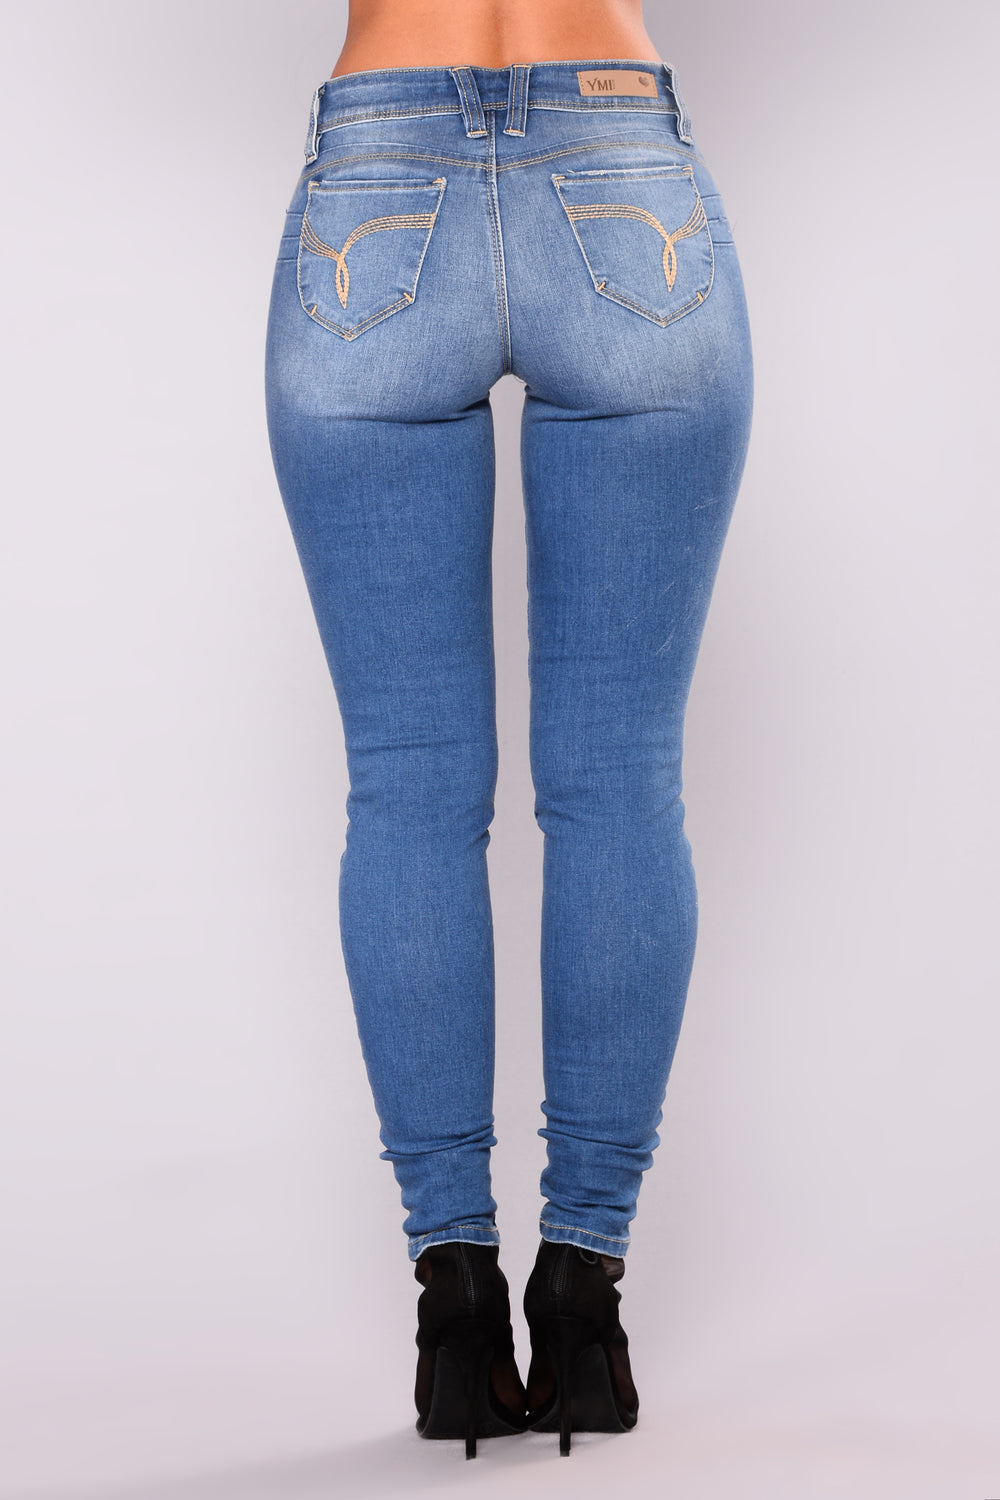 Dip With It Booty Lifting Jeans - Medium Blue Wash